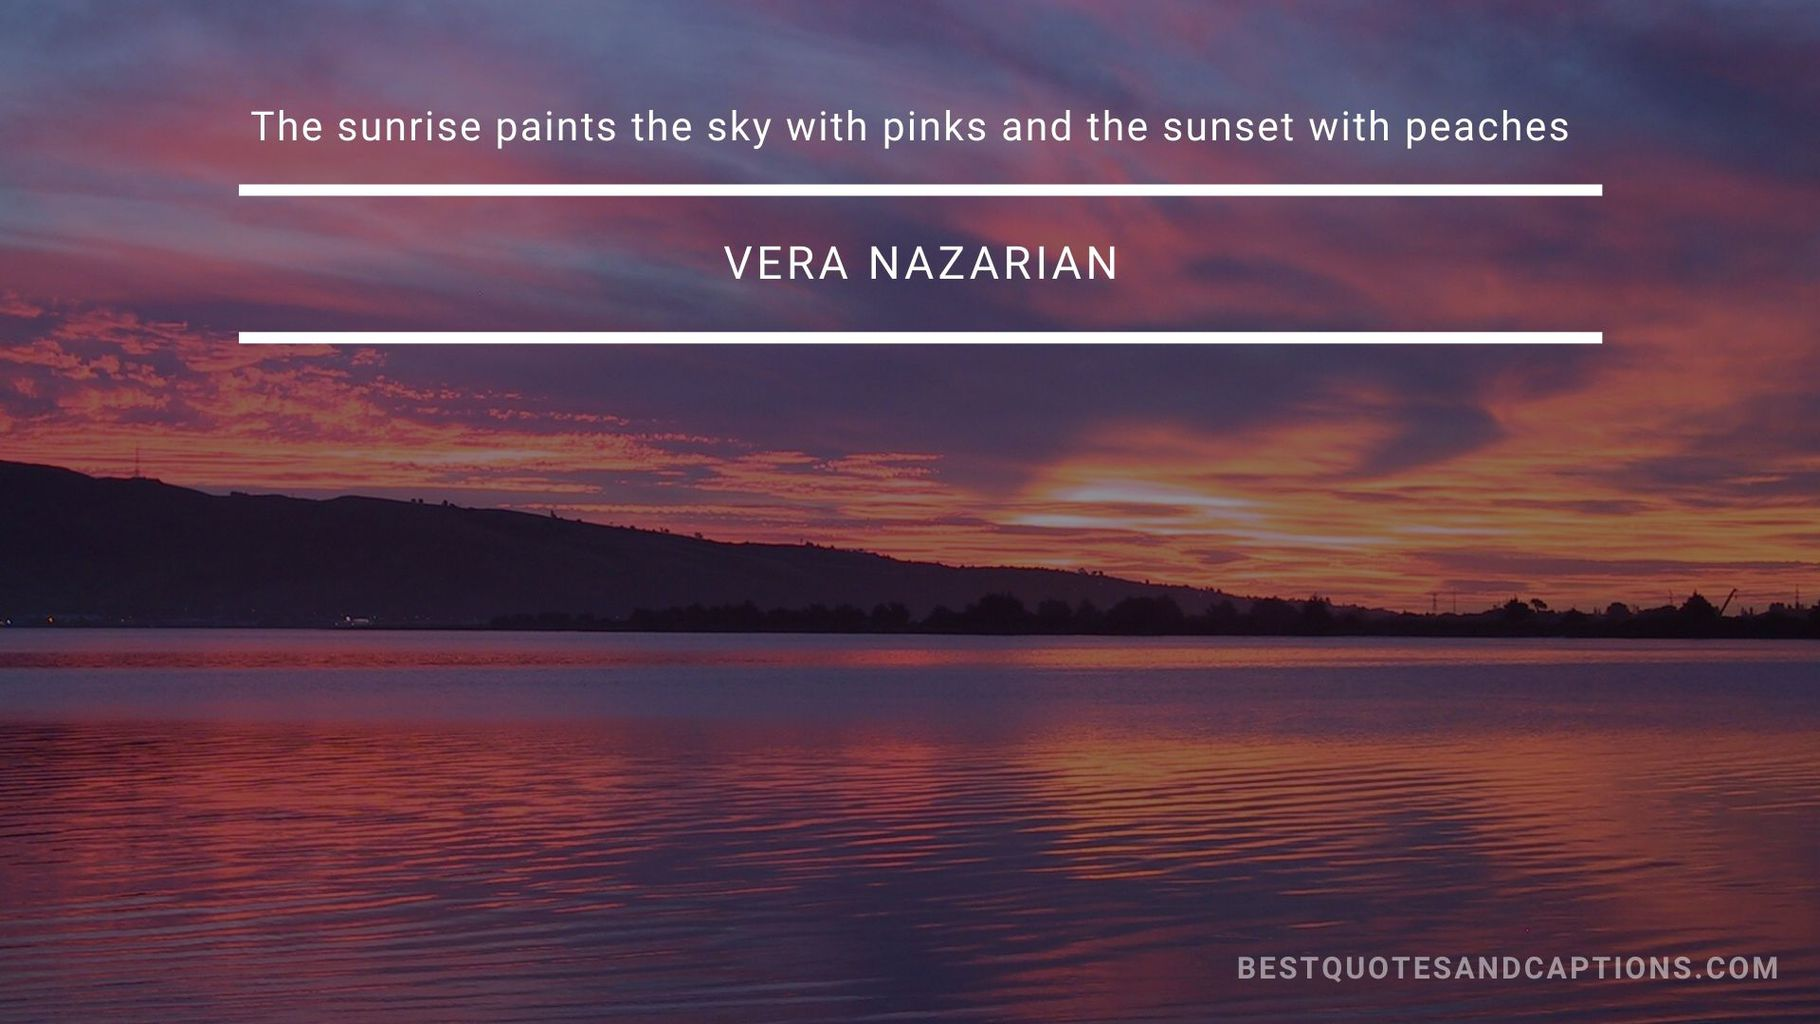 Colourful sunset quotes